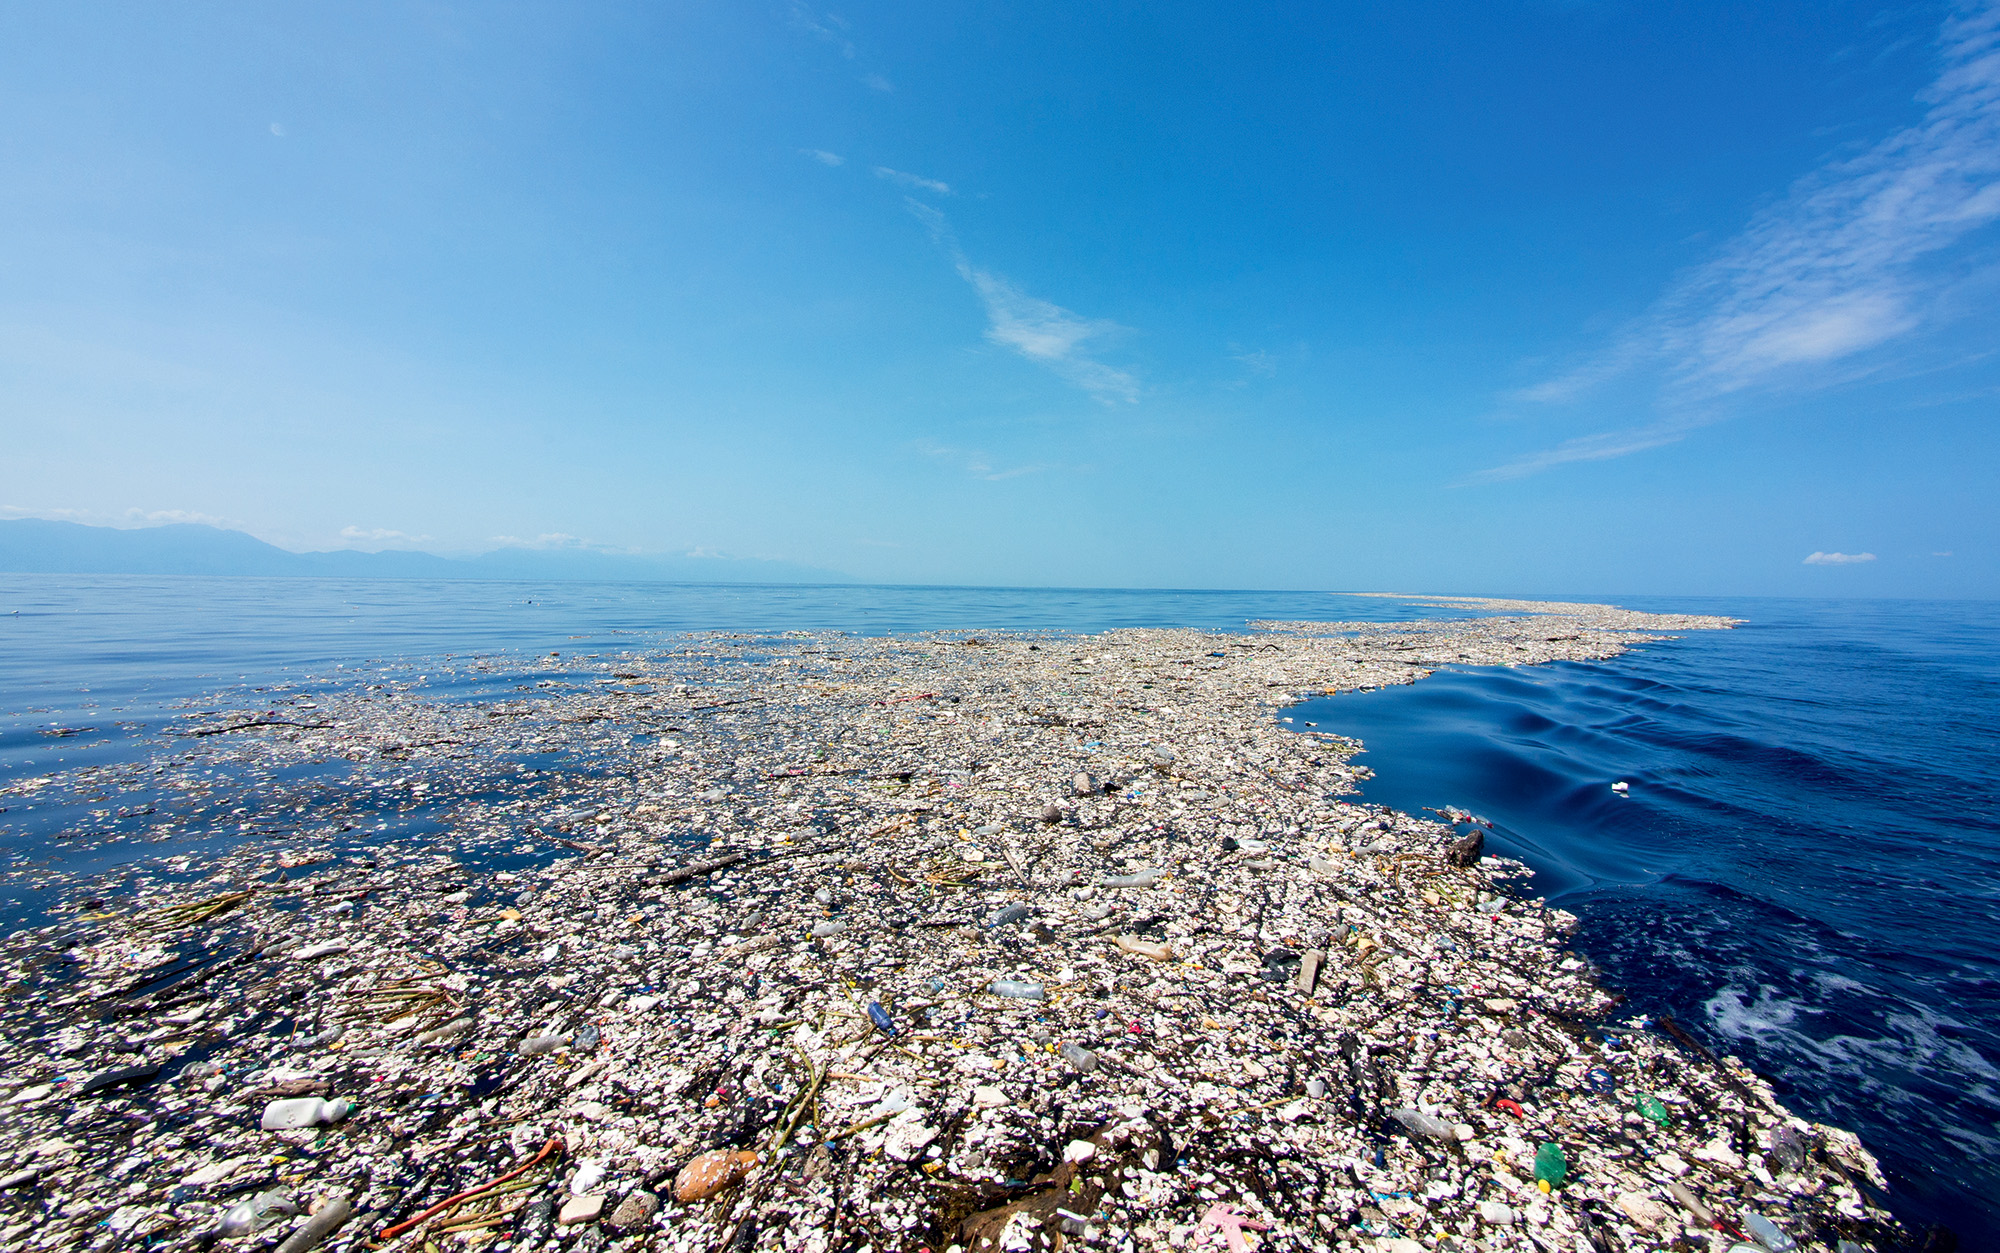 Revolution shines a spotlight on ocean conservation on World Oceans Day with Oris. Shown here is an ugly but realistic sight of marine pollution today.